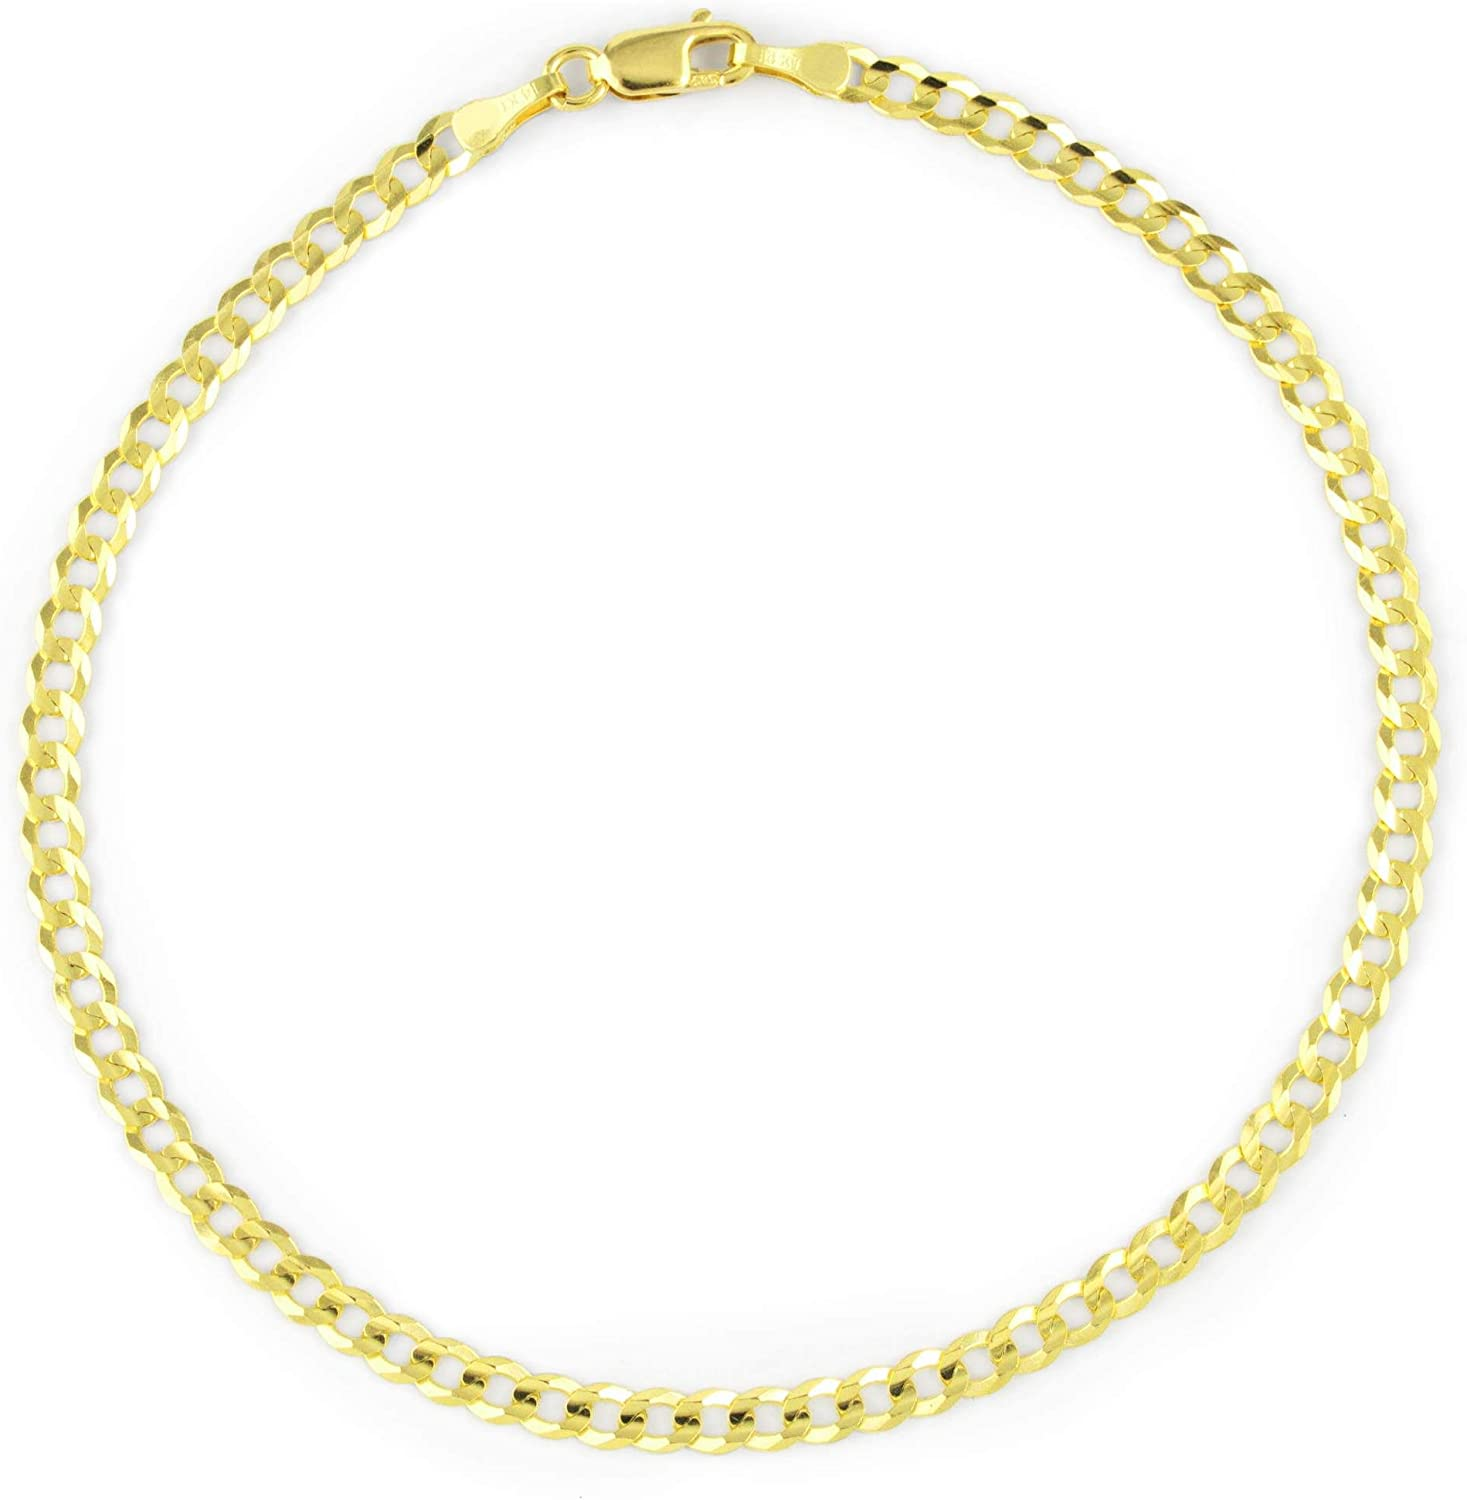 Nuragold 14k Yellow Gold 3mm Solid Cuban Curb Link Chain Bracelet or Anklet, Womens Mens Lobster Lock 7